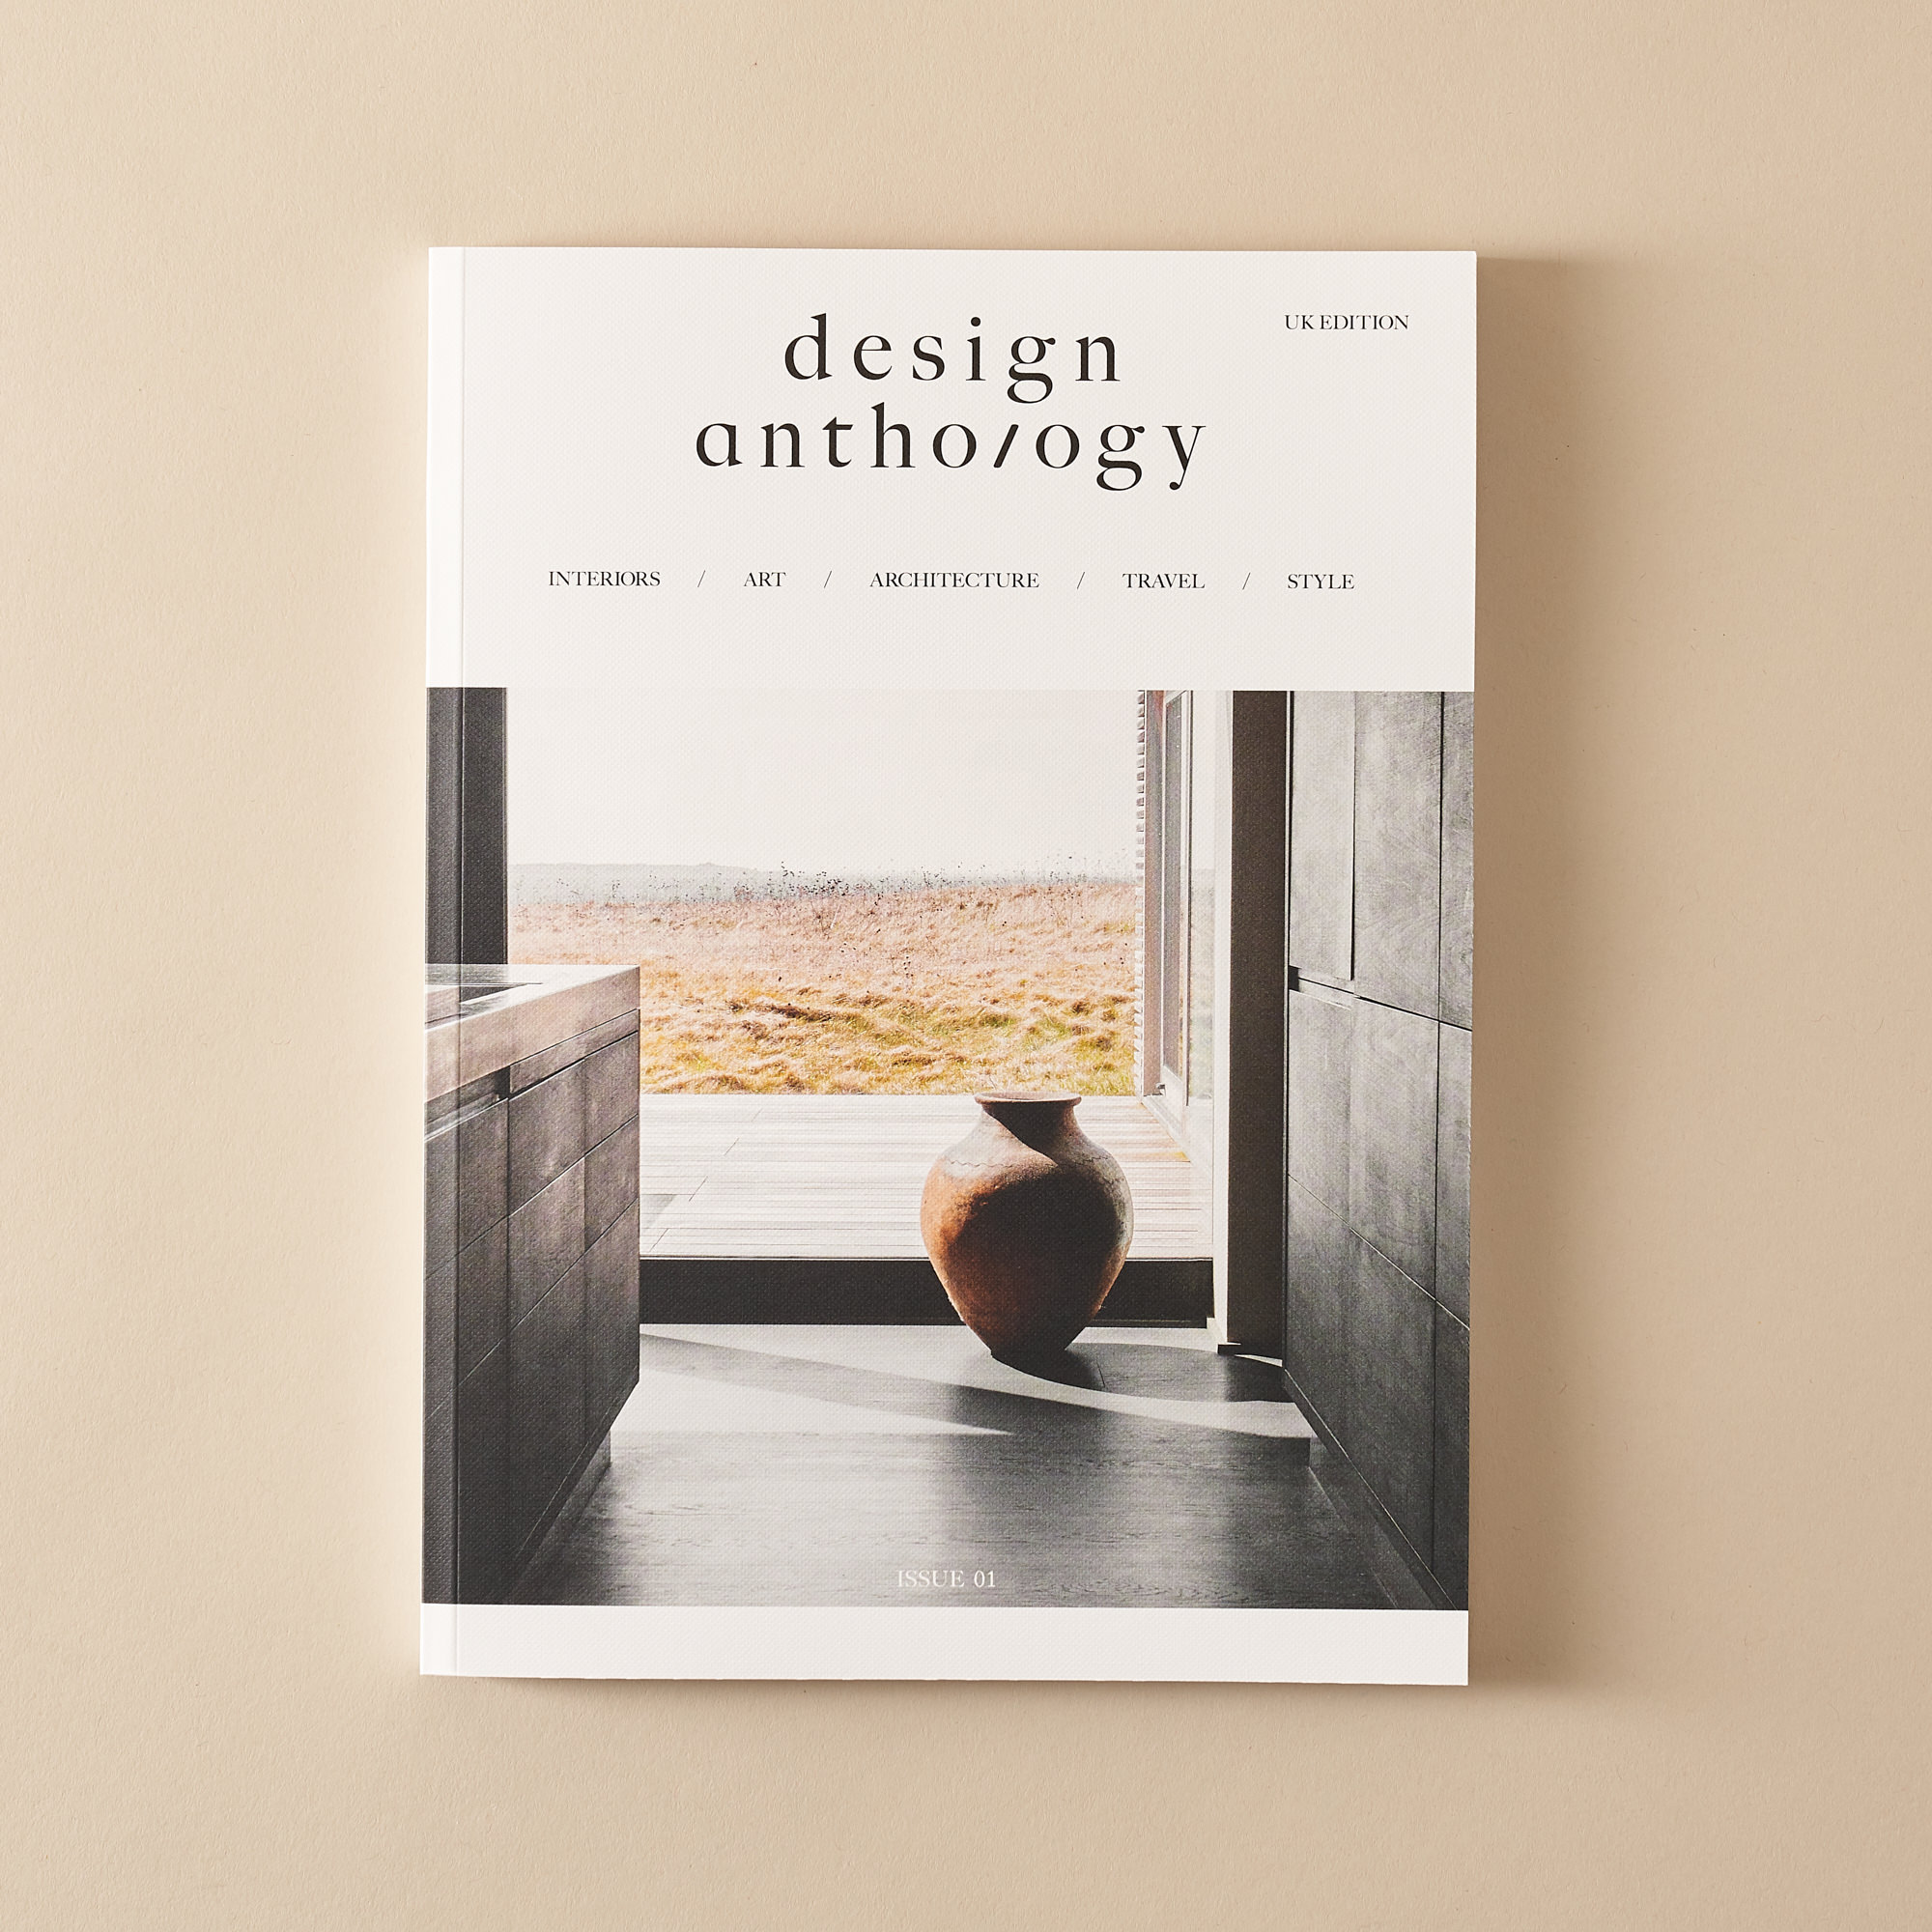 Design-Anthology-12.11.185244.jpg